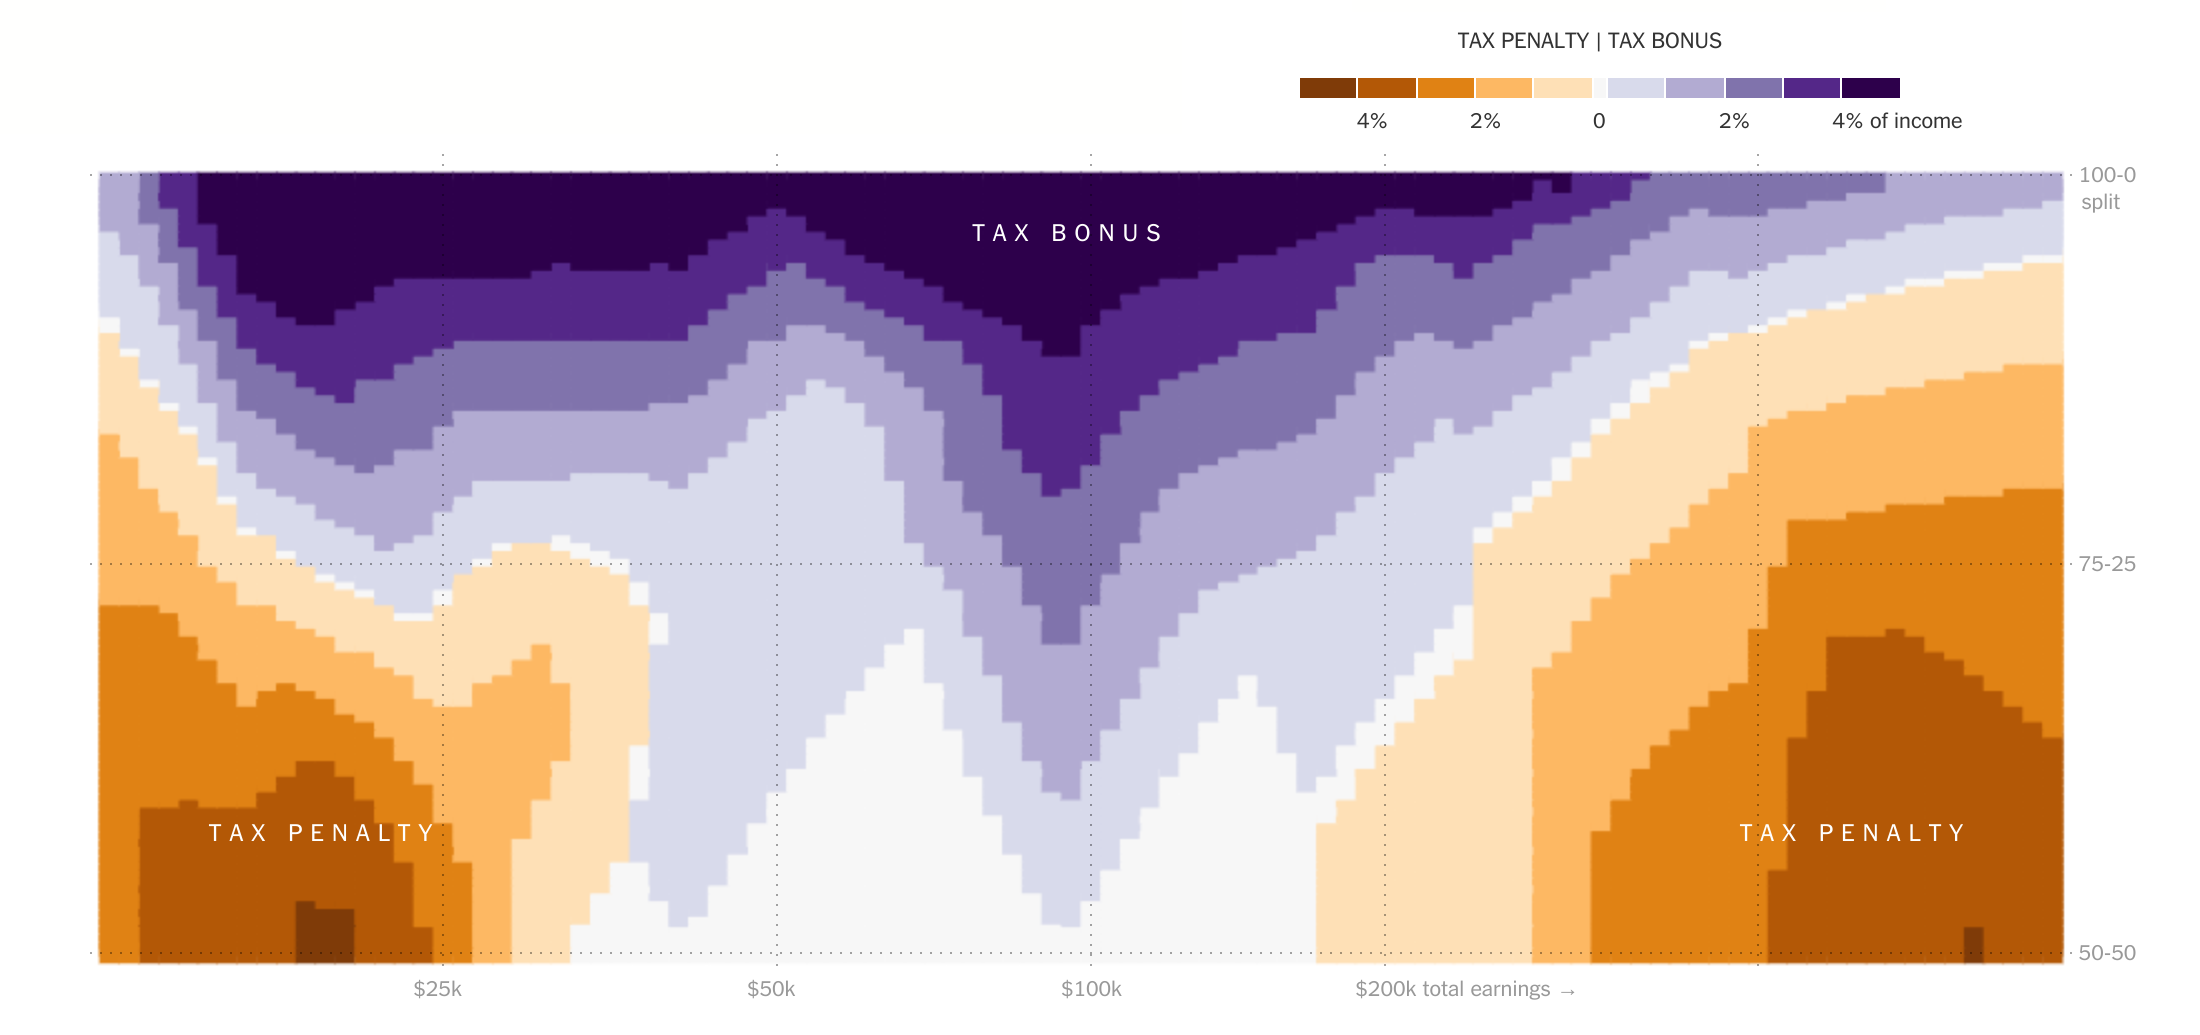 "A strange, convoluted heatmap; the key indicates that the value varies from ""-4% of income"" to ""+4% of income""."